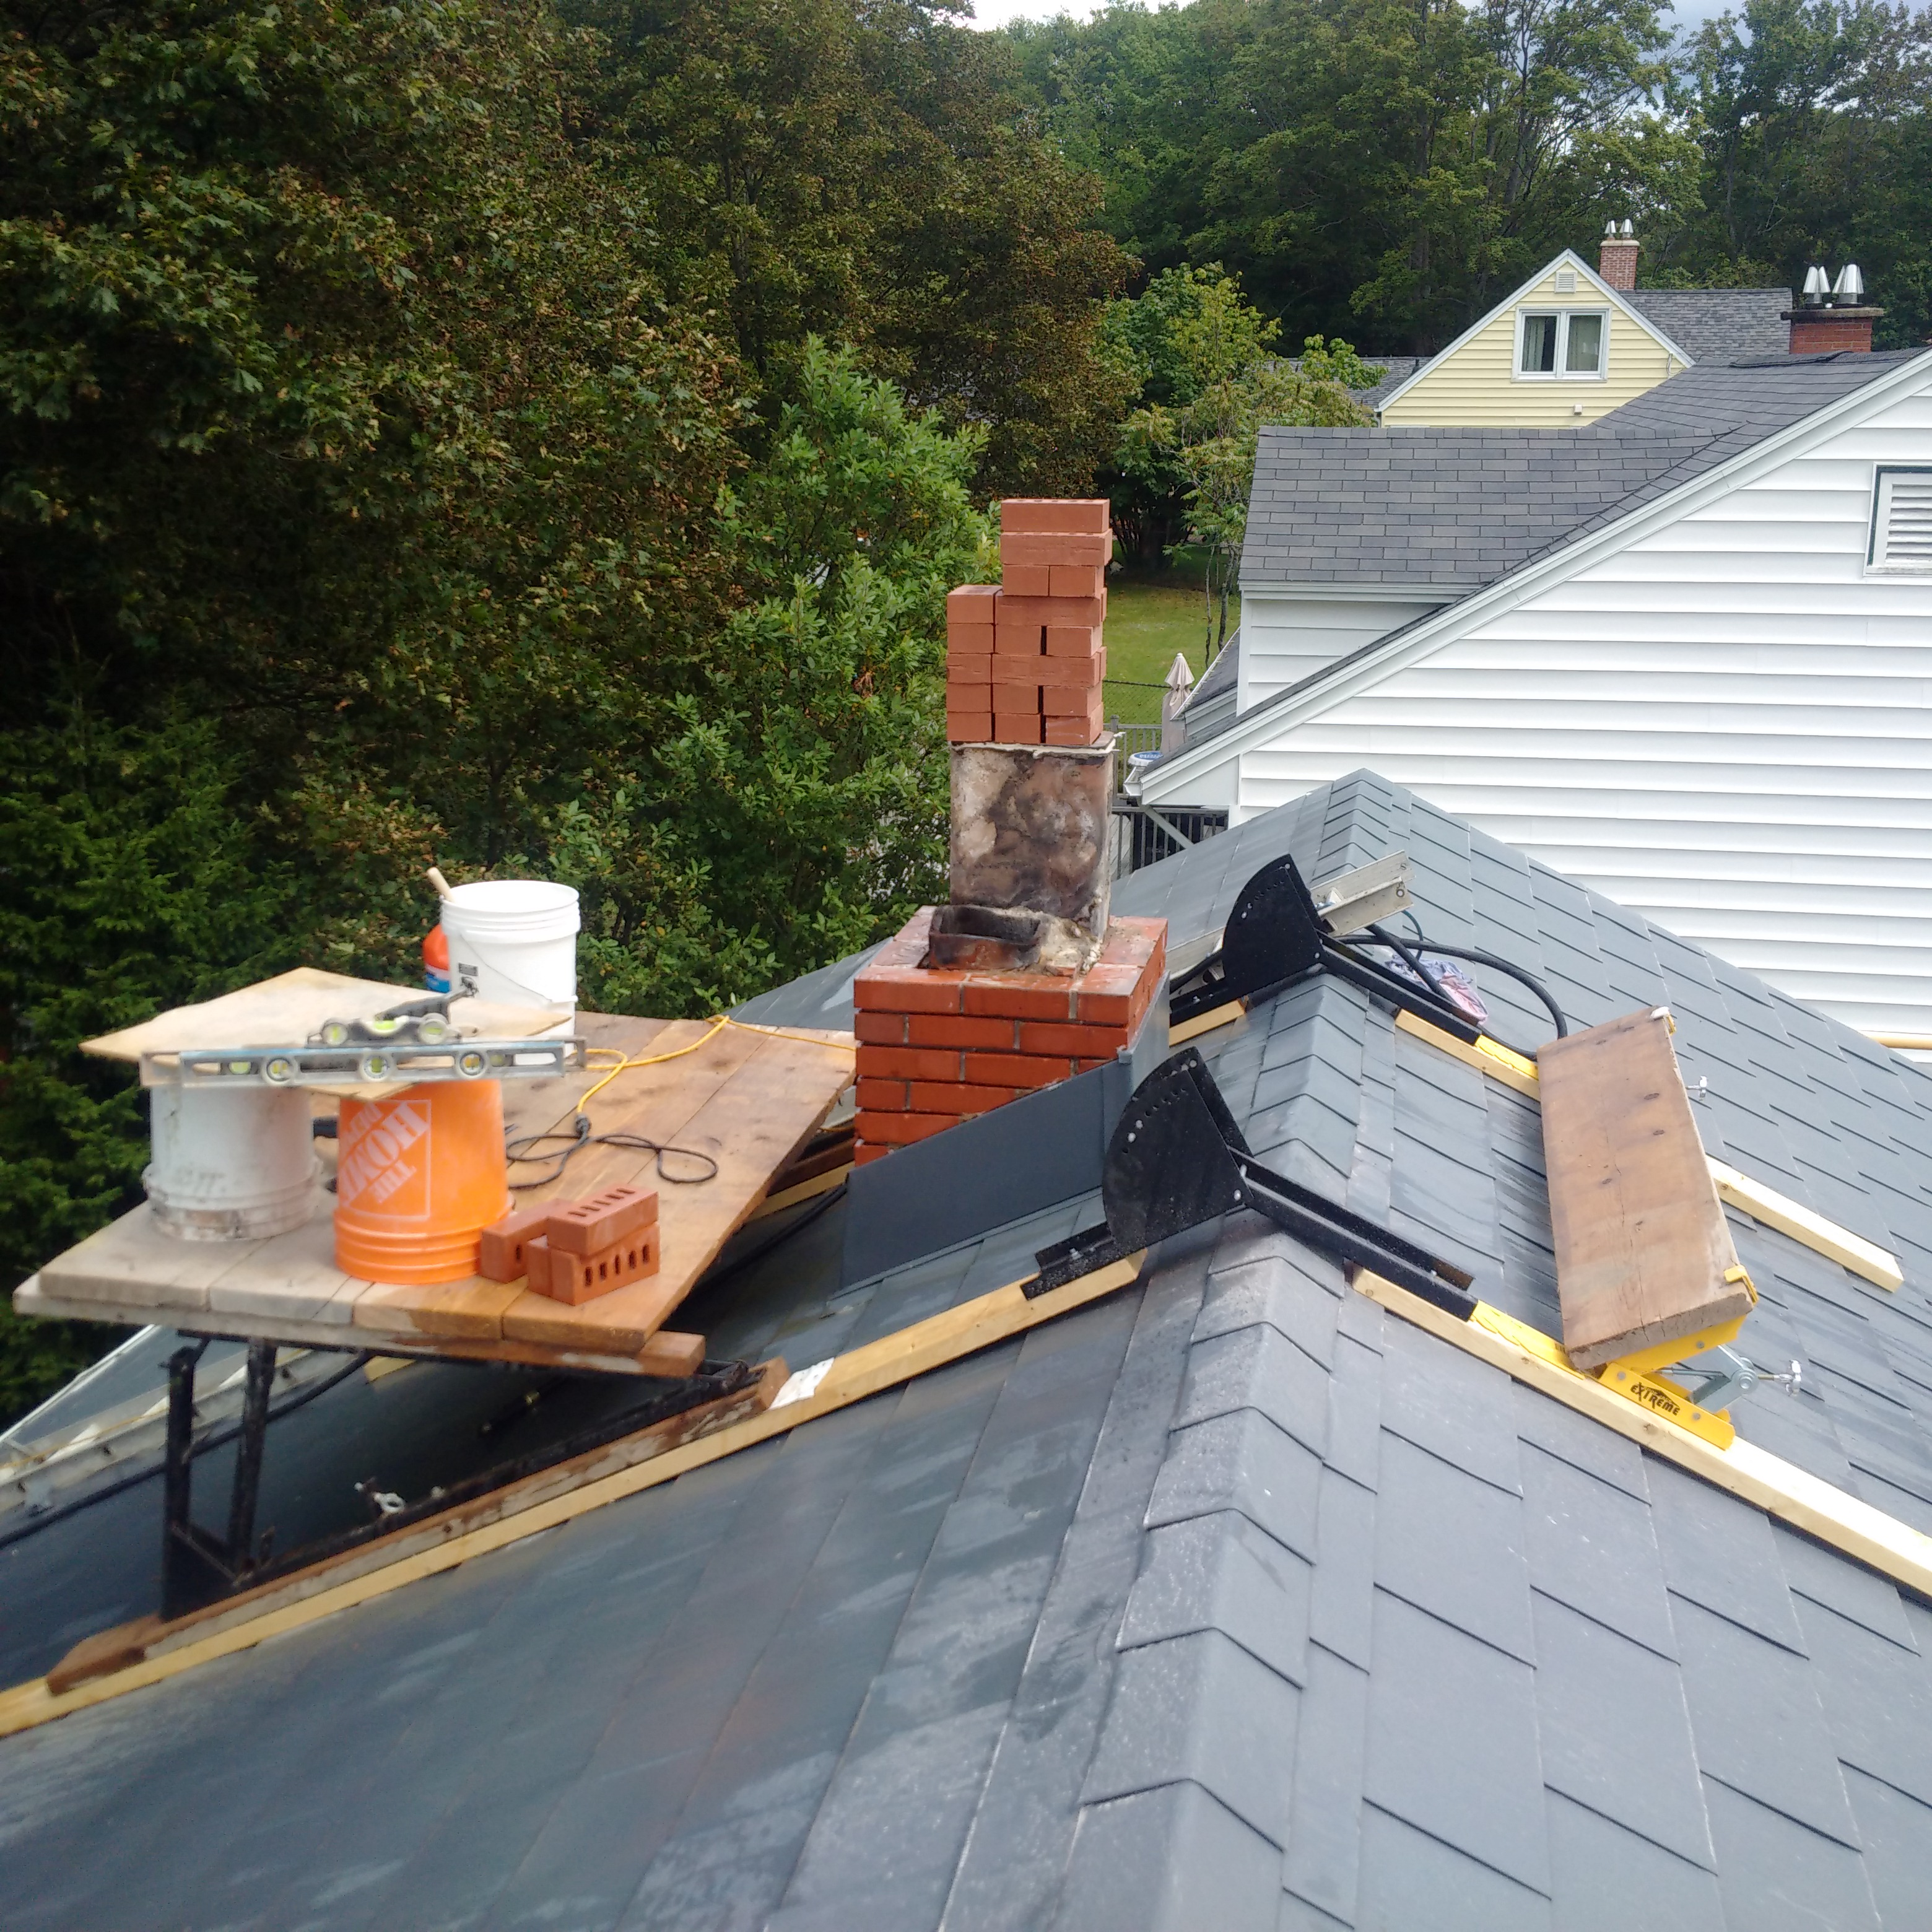 image of chimney liner installation services completed in Halifax-Dartmouth Regional Municipality by Pro Chimney Services based in Halifax, NS servicing all of the Halifax-Dartmouth Regional Municipality, Bedford, Sackville, Mount Uniacke, Windsor, Hantsport , Wolfville, Kentville, Chester, Mahone Bay, Lunenburg, Bridgewater, Liverpool, Fall River, Wellington, Enfield, Elmsdale, Brookfield, Truro, Musquodoboit Harbour & surrounding areas.